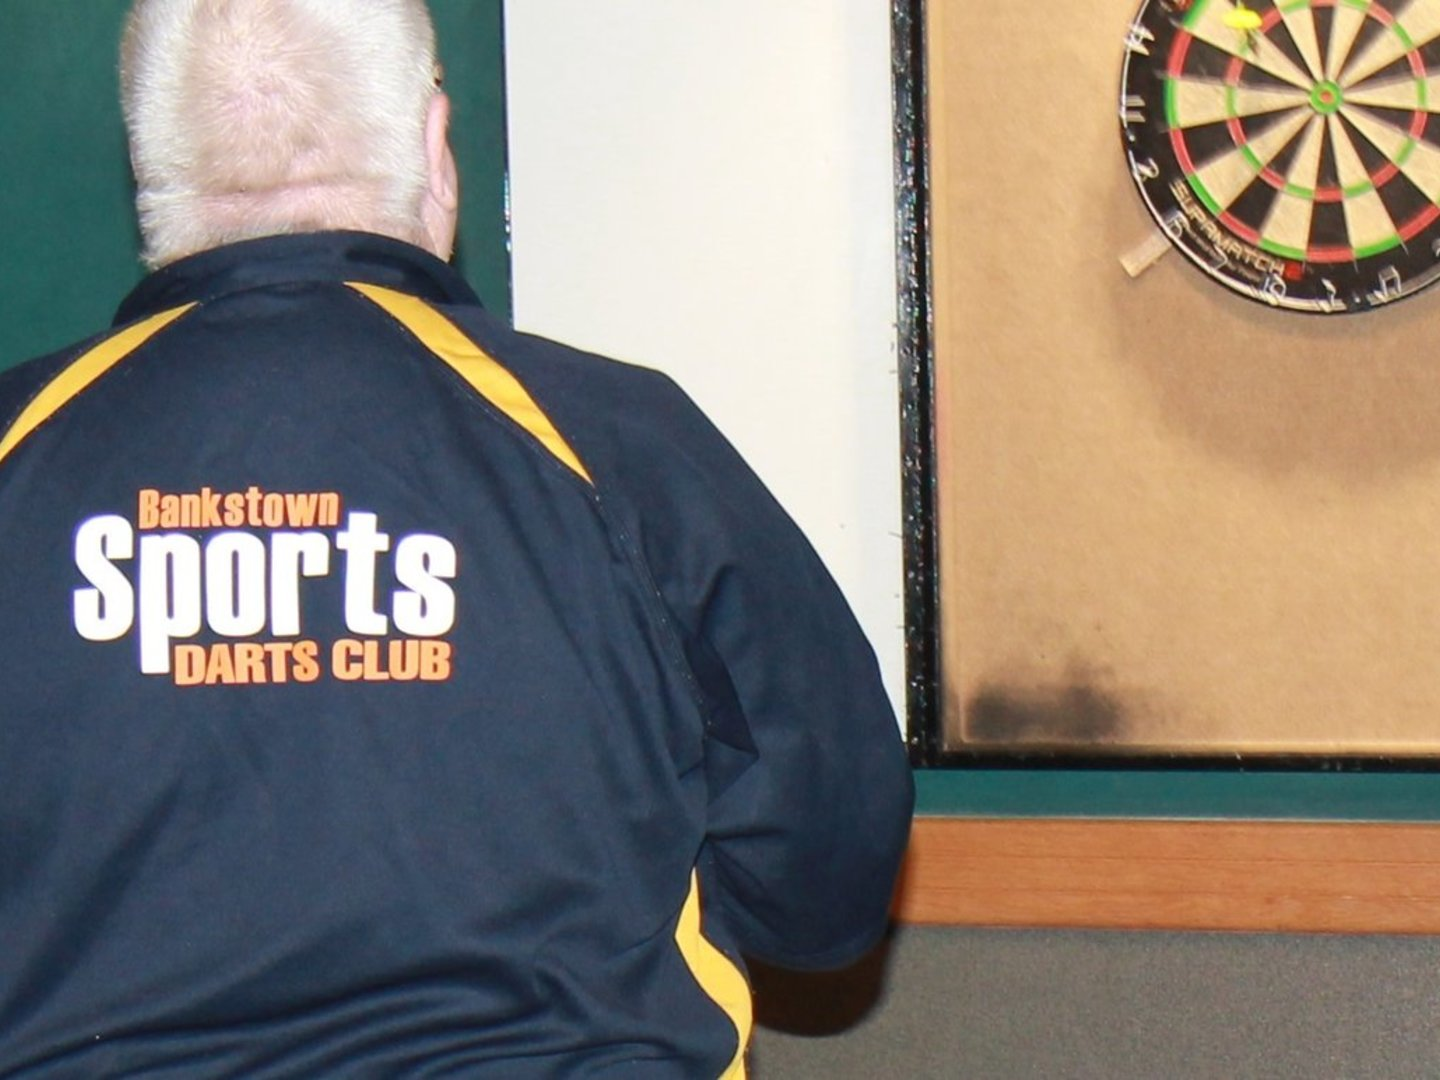 BANKSTOWN SPORTS TUESDAY MIXED SOCIAL DARTS